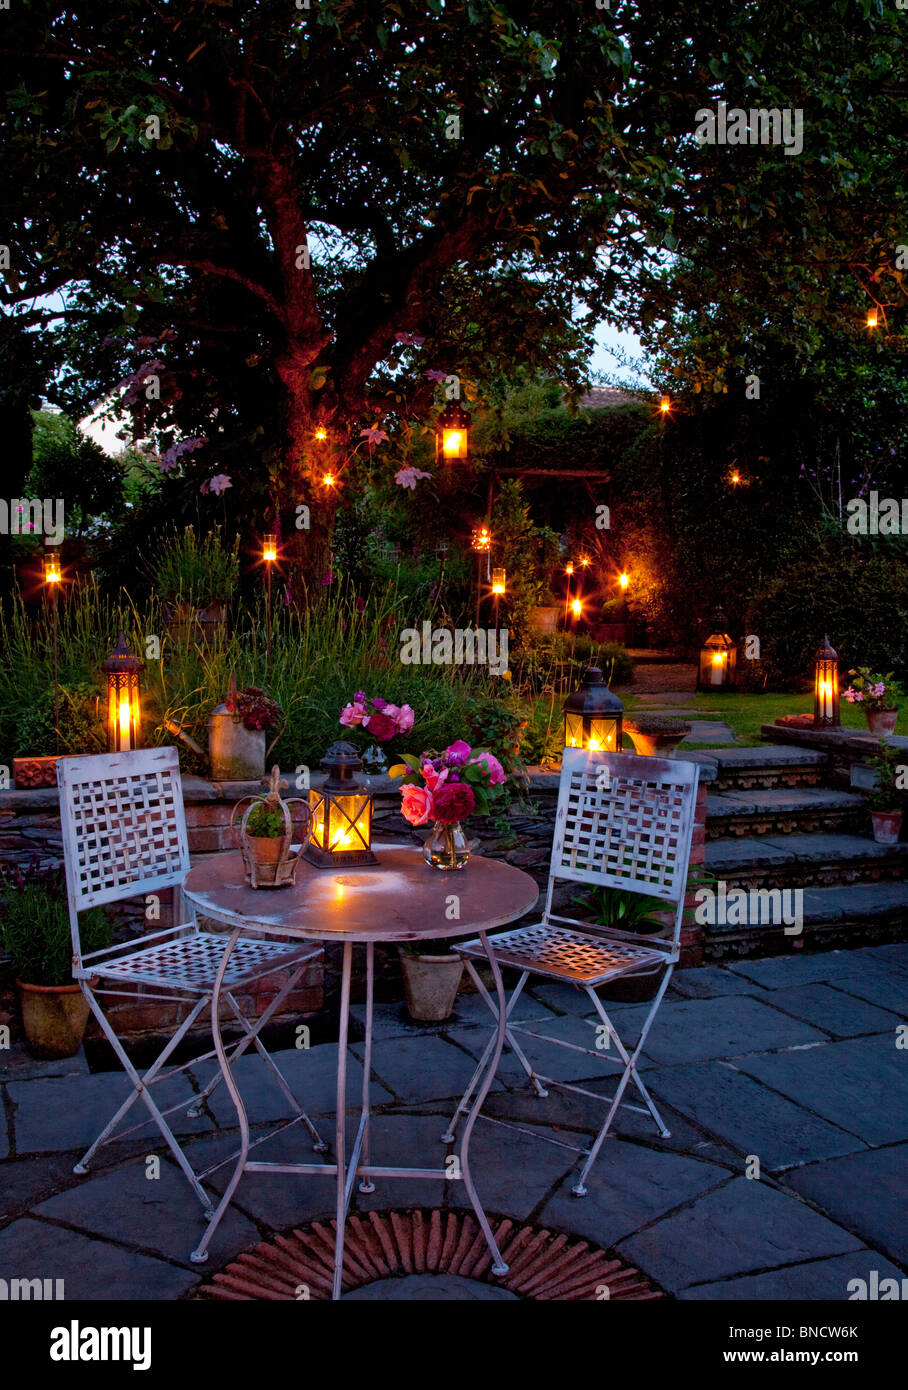 Amazing Metal Table And Chairs On Patio With Candles And Lanterns In Garden At Night